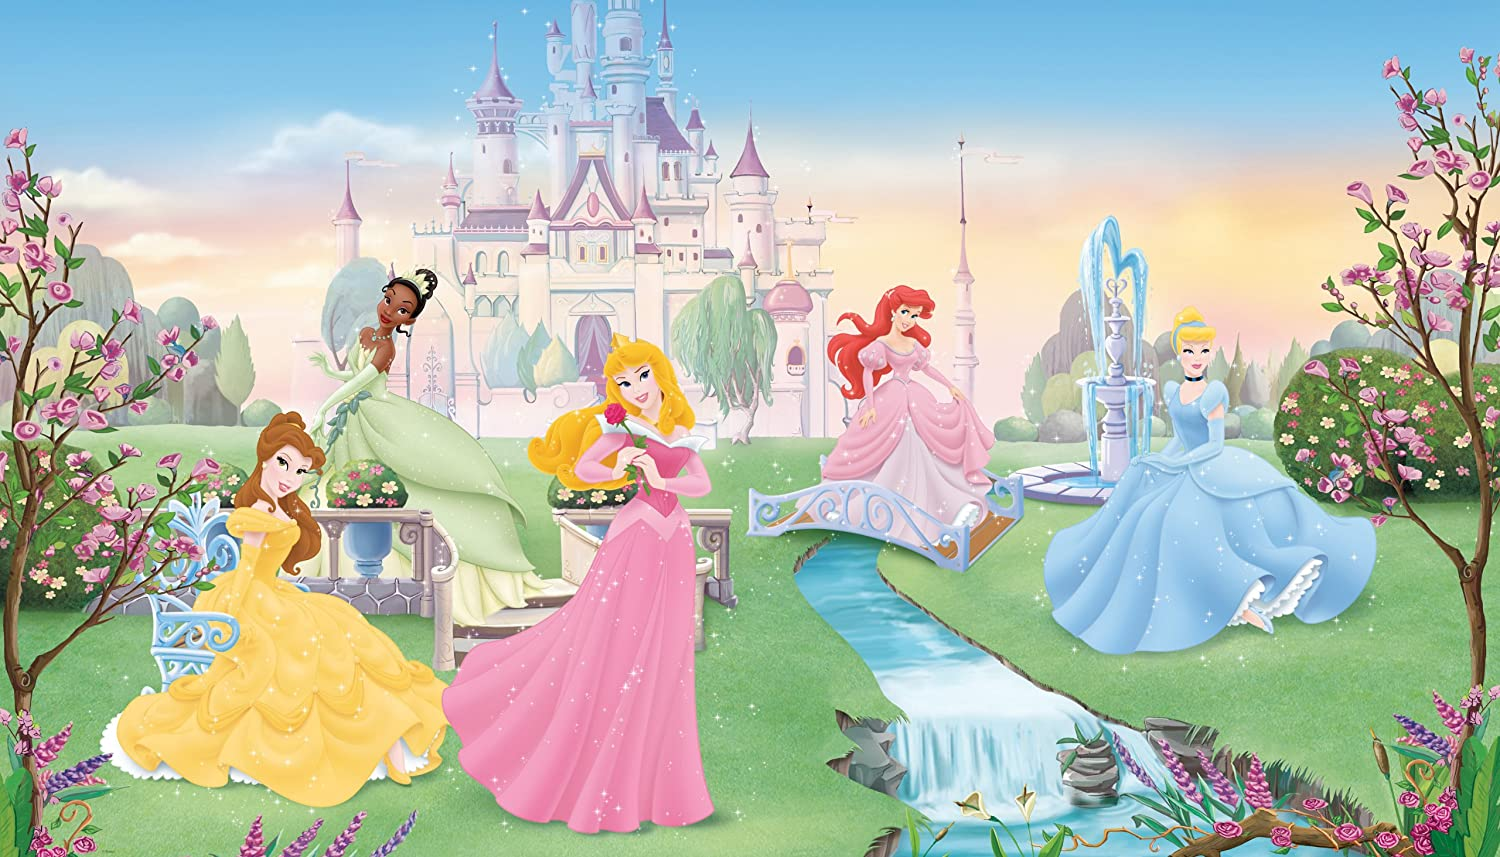 Ordinaire Amazon.com: RoomMates JL1228M Disney Dancing Princess 6 Foot By 10.5 Foot  Prepasted Wall Mural: Home Improvement